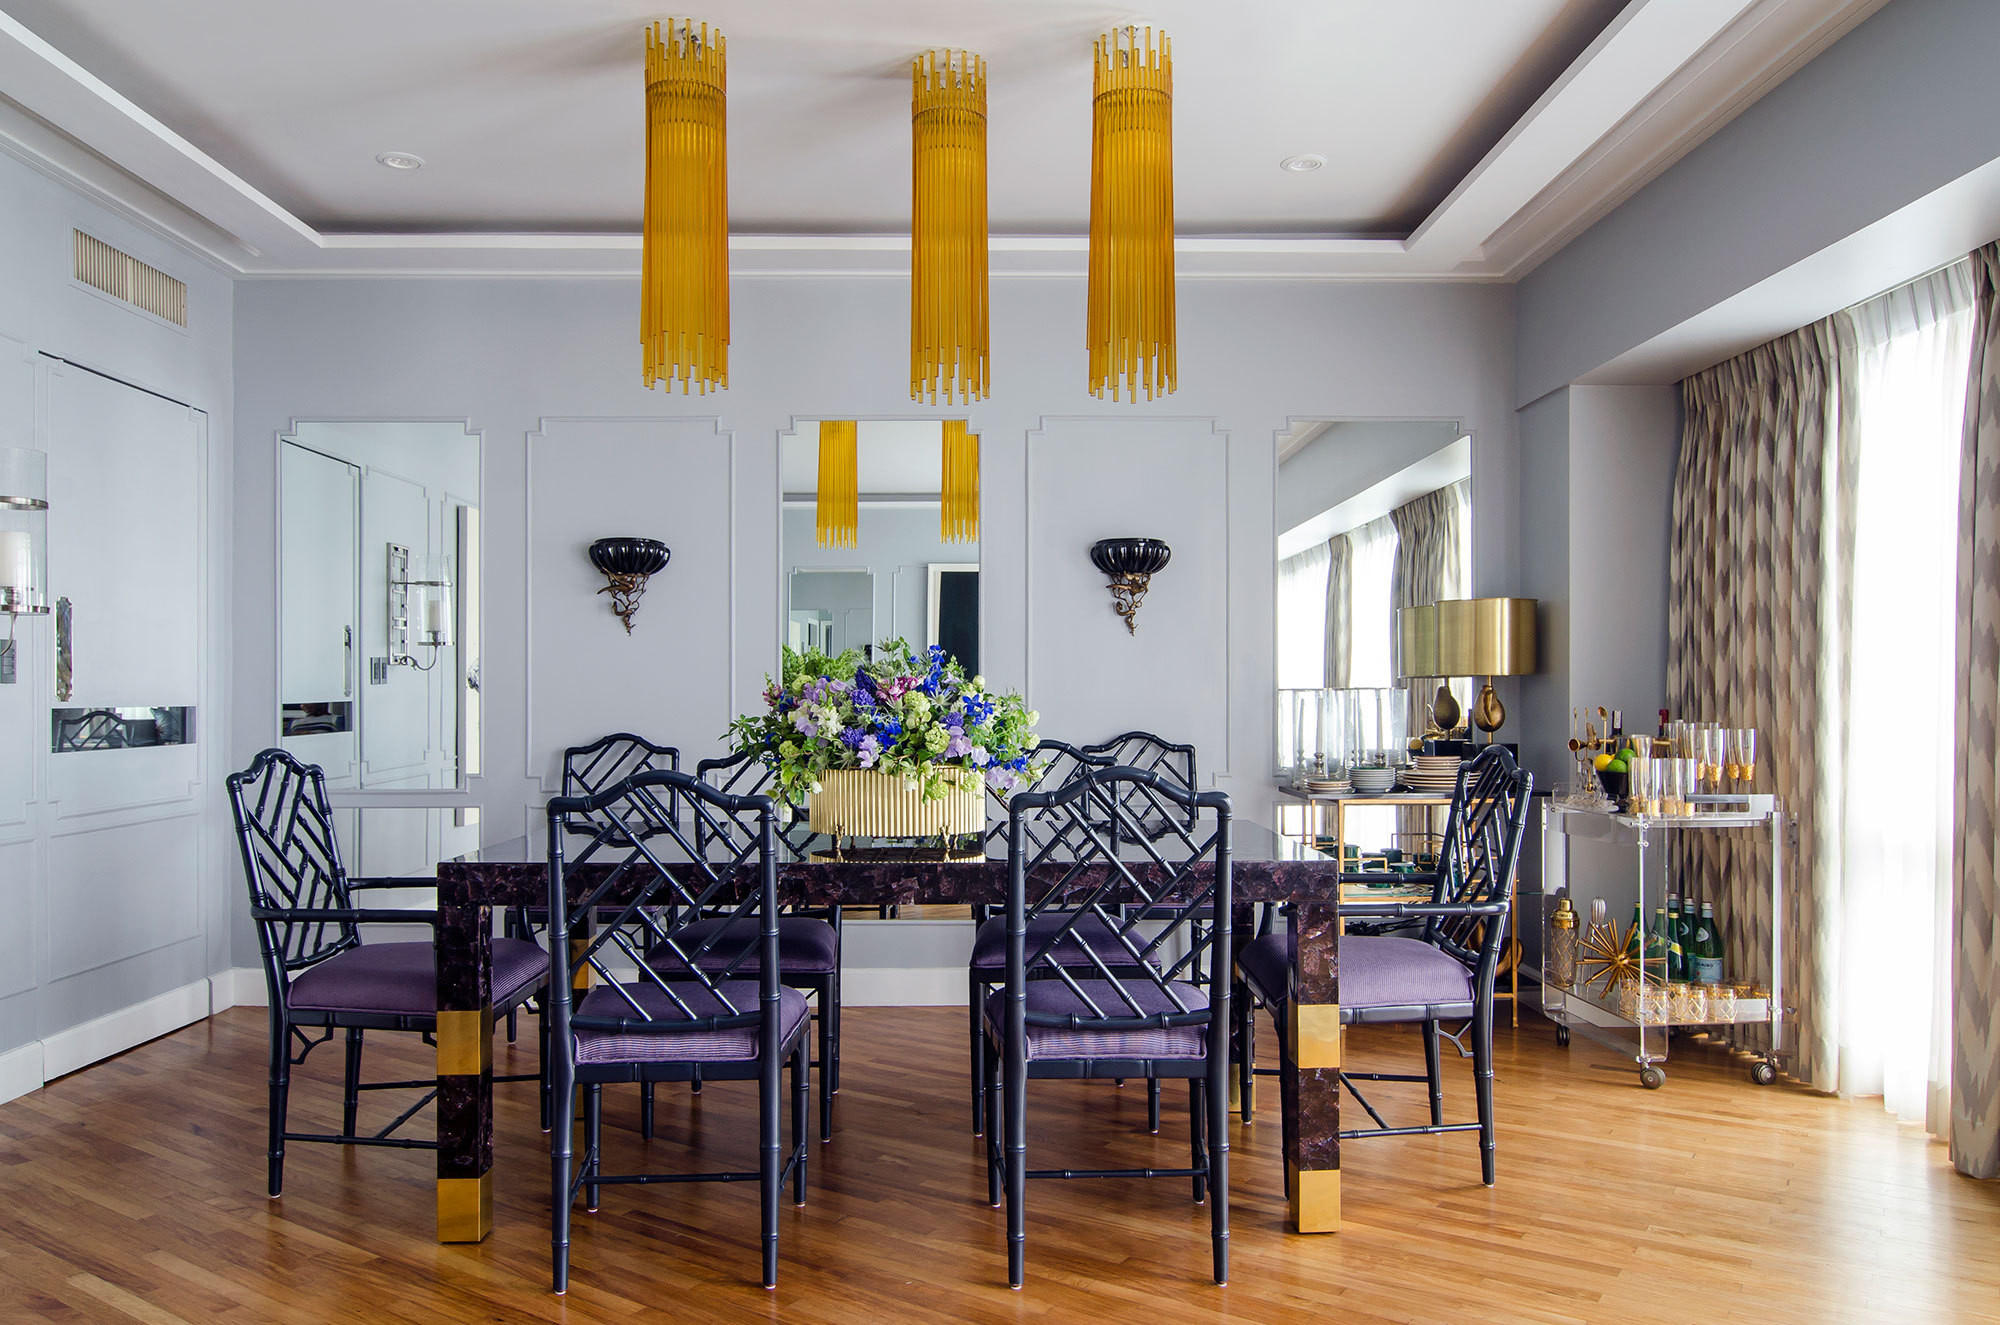 Chippendale chairs surrounded a brass-and-shell table from Carreon's collection. The designer added the room's moldings and mirrored wall panels.